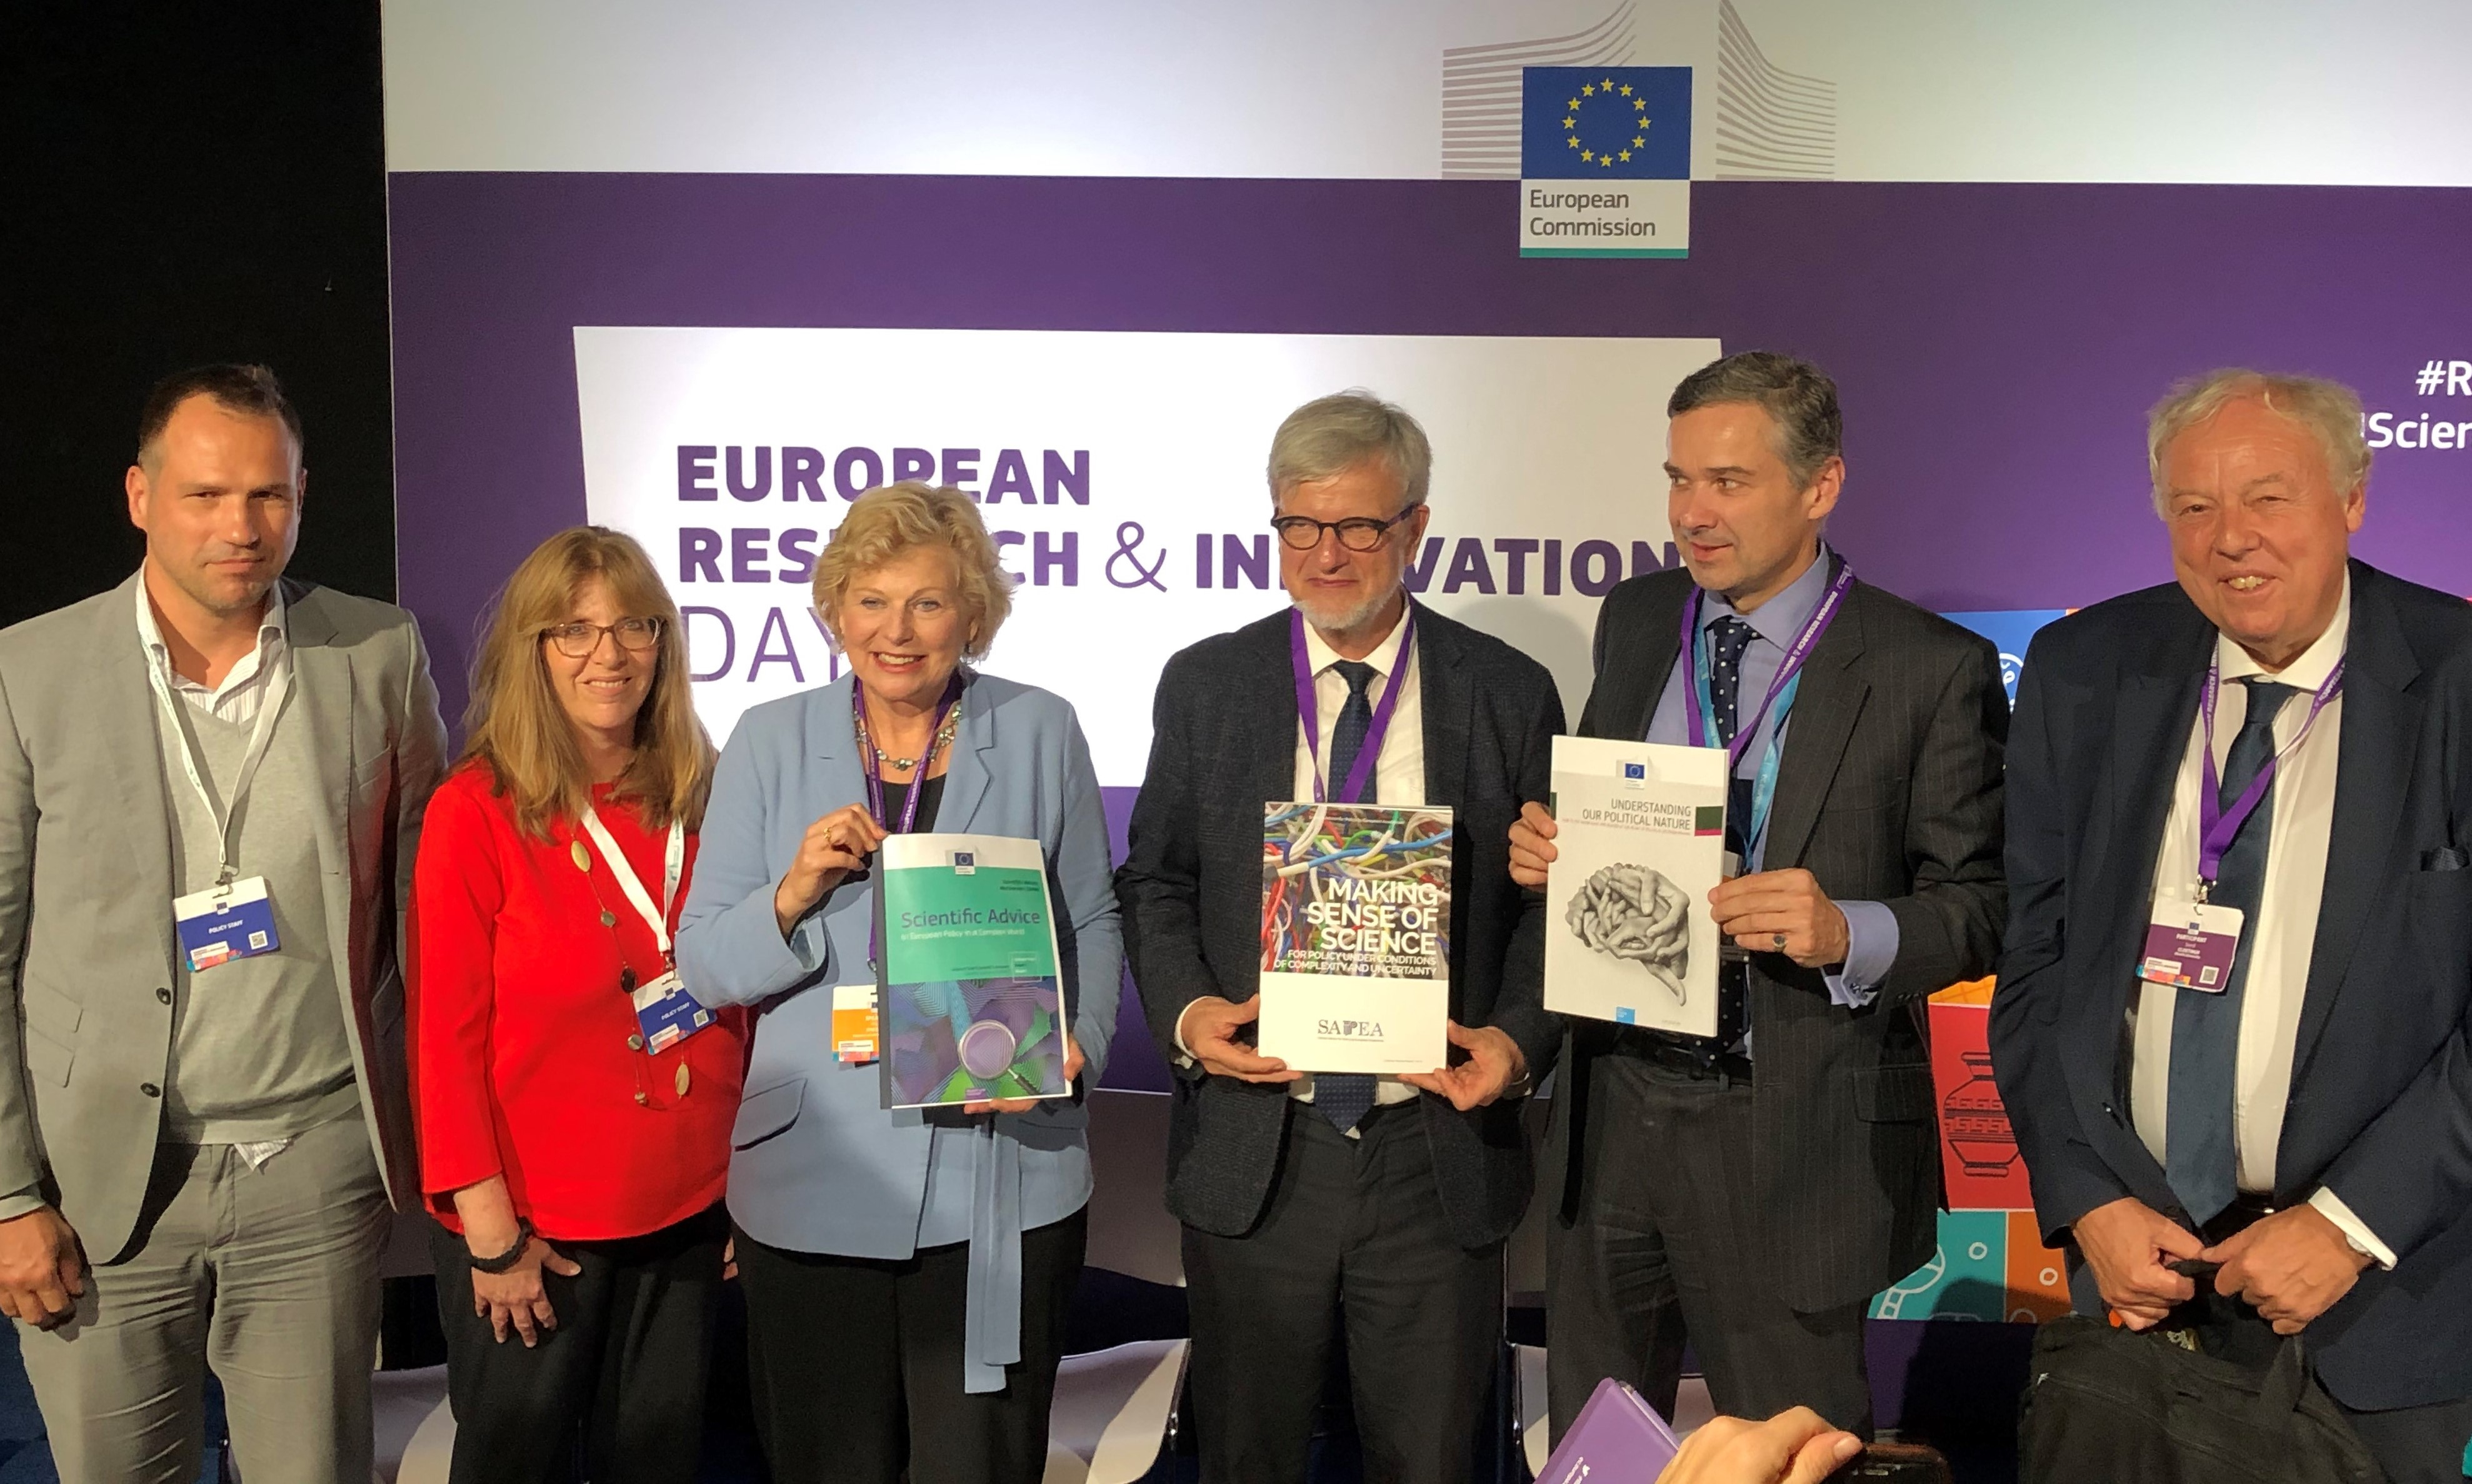 The scientific opinion by the EU Chief Scientific Advisors are presented to the public Left to right: Dr Piotr Kwiecinski, Louise Edwards, Professor Pearl Dykstra, Professor Ortwin Renn, Dr David Mair, and Professor Sierd Cloetingh